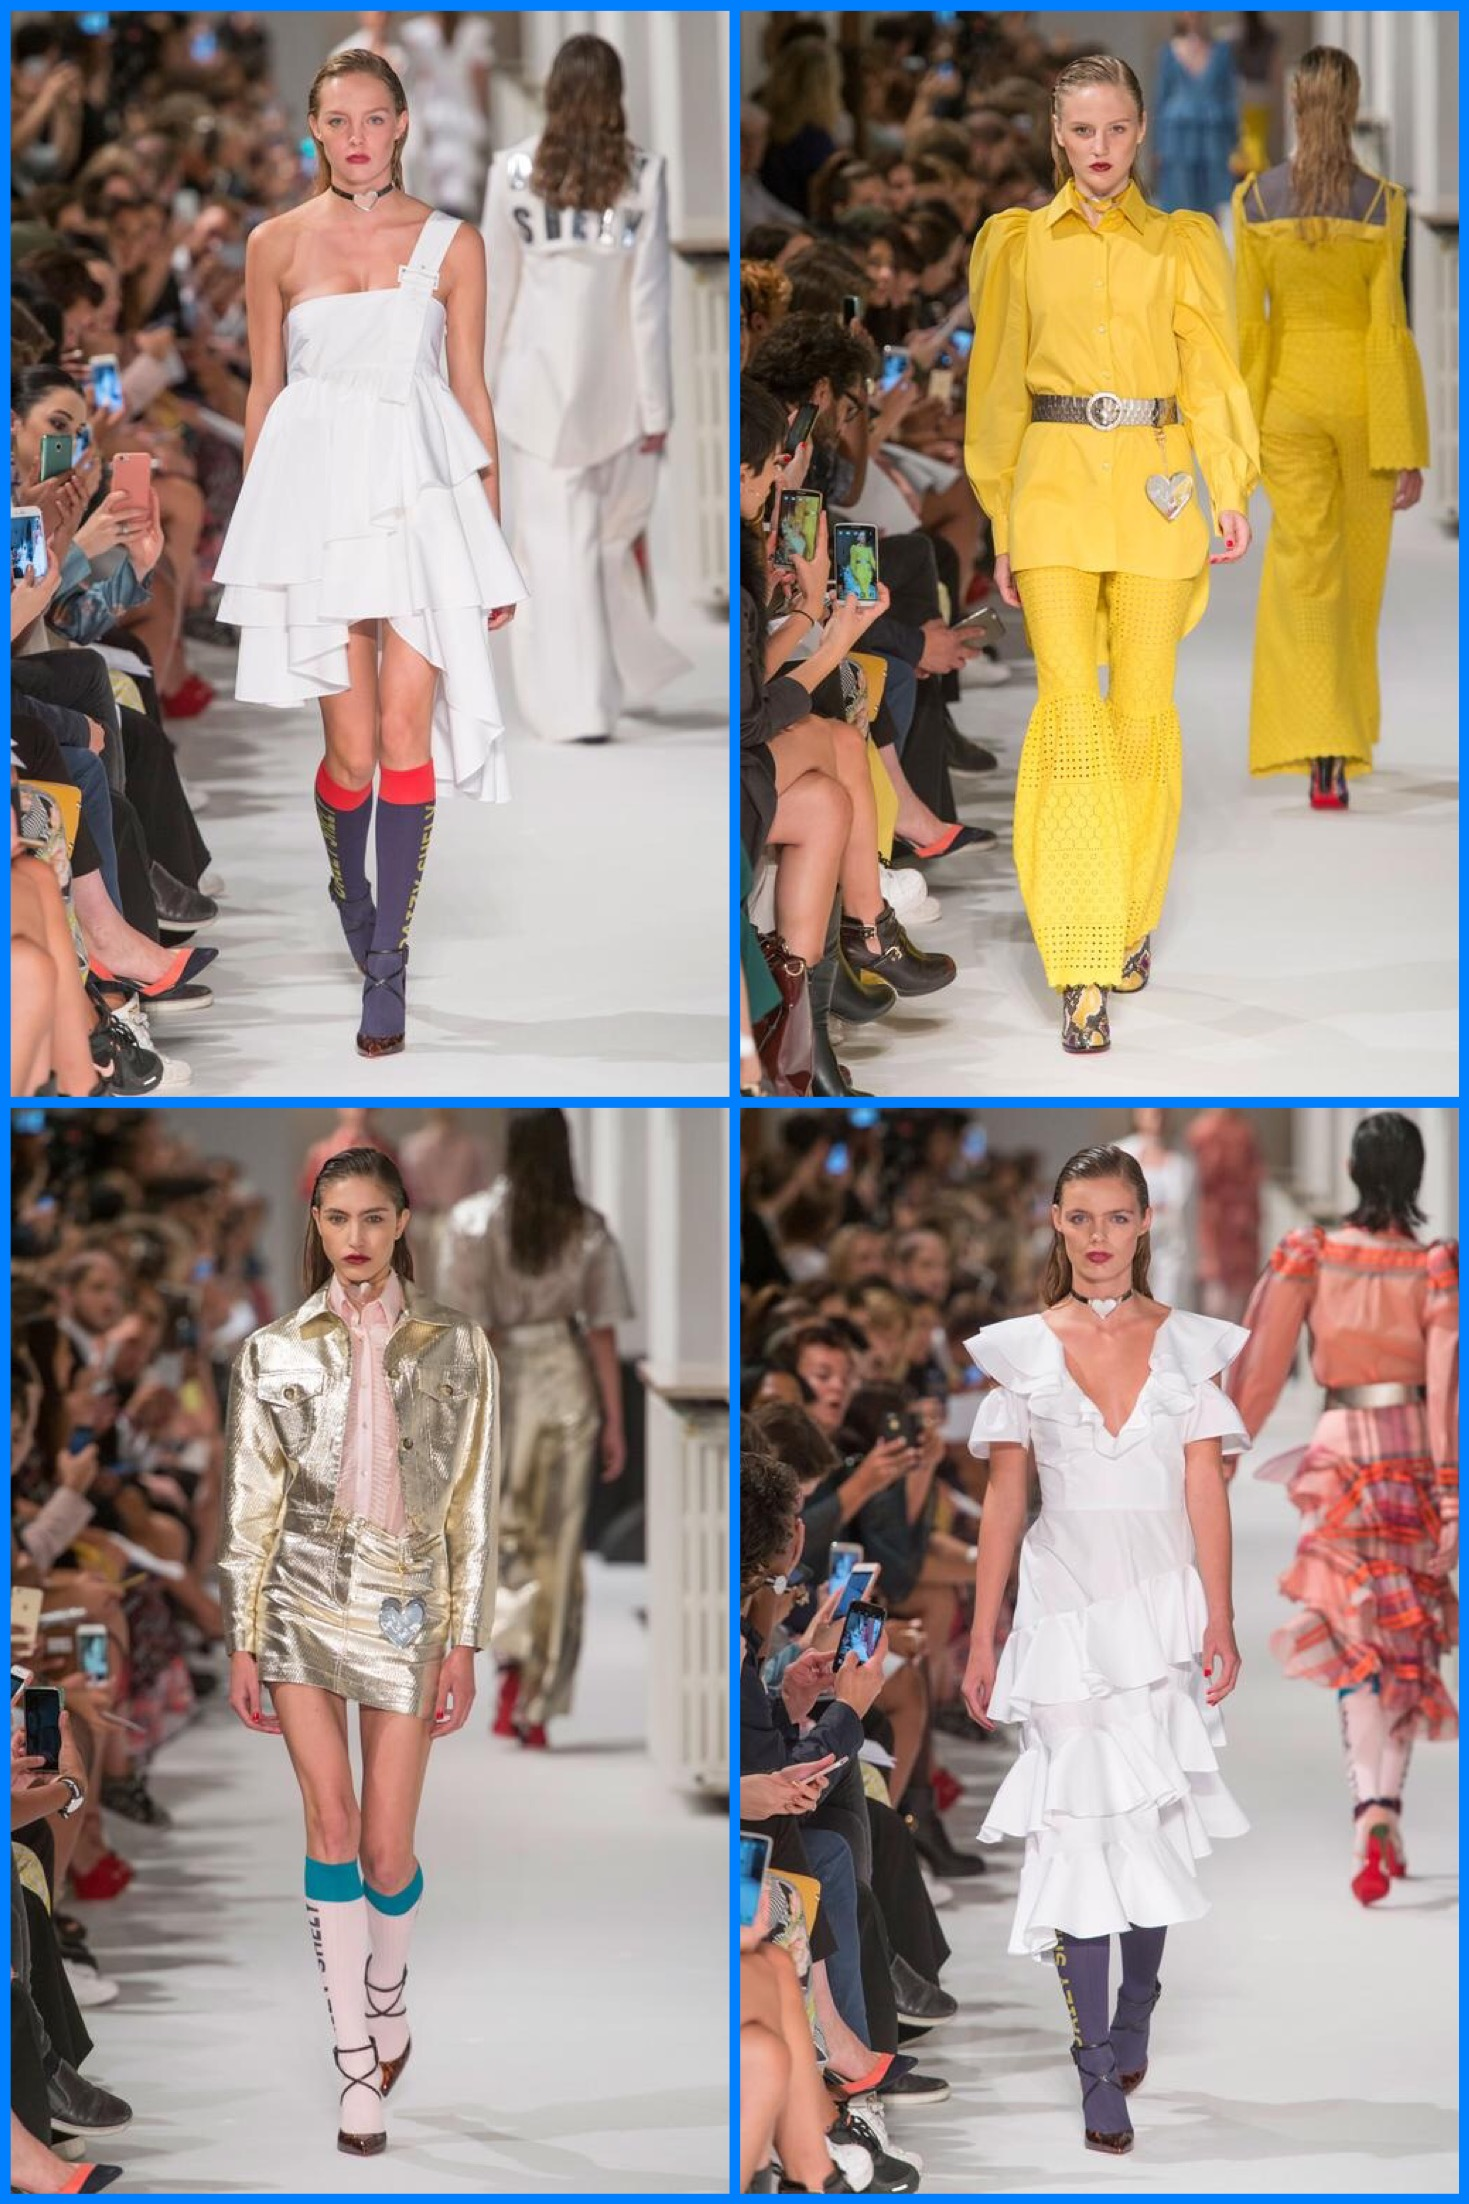 milano-fashion-week-pret-a-porter-spring-summer-2017-style-daisy-shely